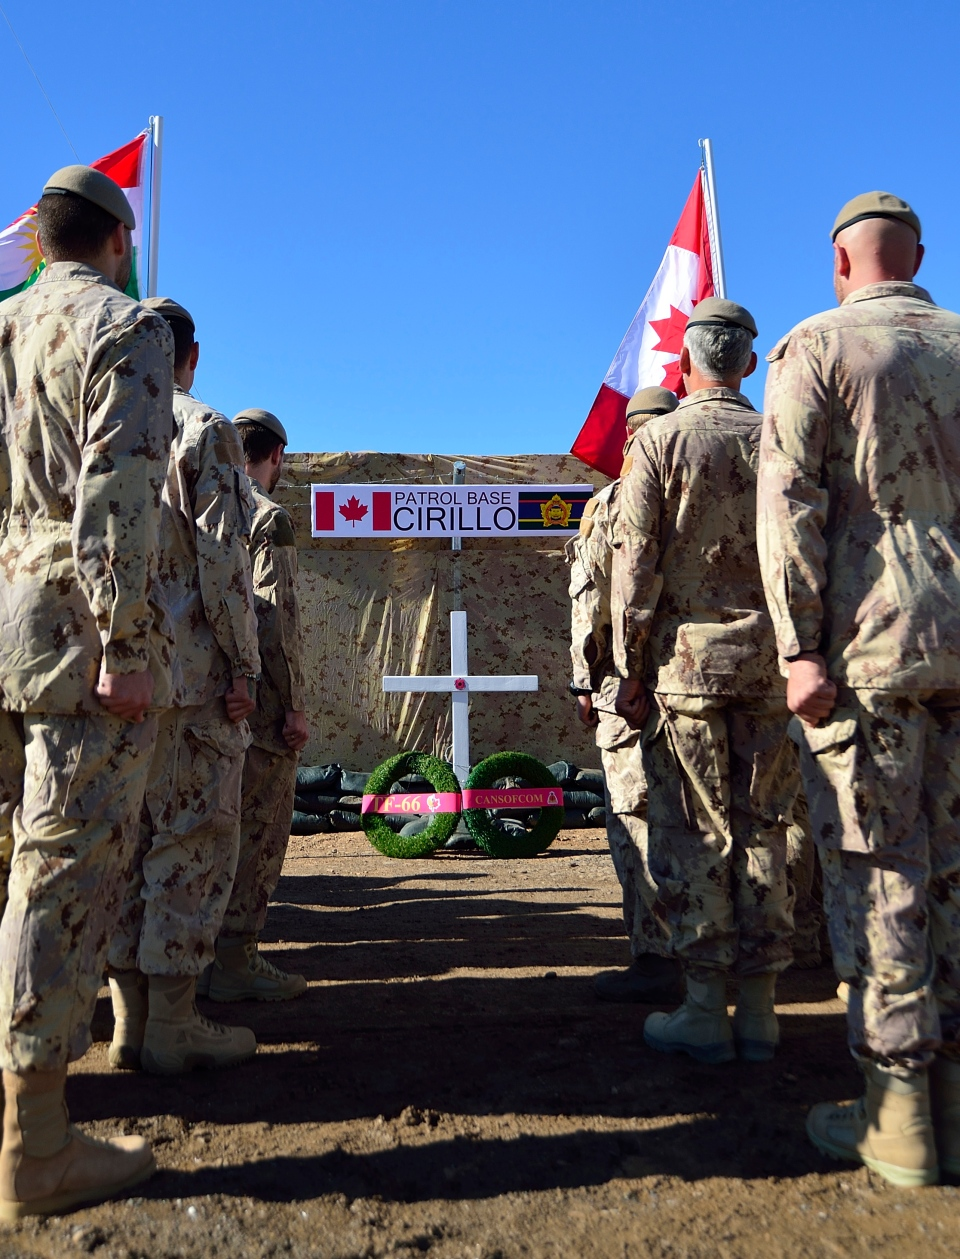 Members of the Canadian Special Operations Force Command stand at attention at the naming ceremony for the new Canadian Special Operations Force Command Patrol Base Cirillo during Operation IMPACT in Iraq on November 6, 2014. (Canadian Forces Combat Camera / DND)